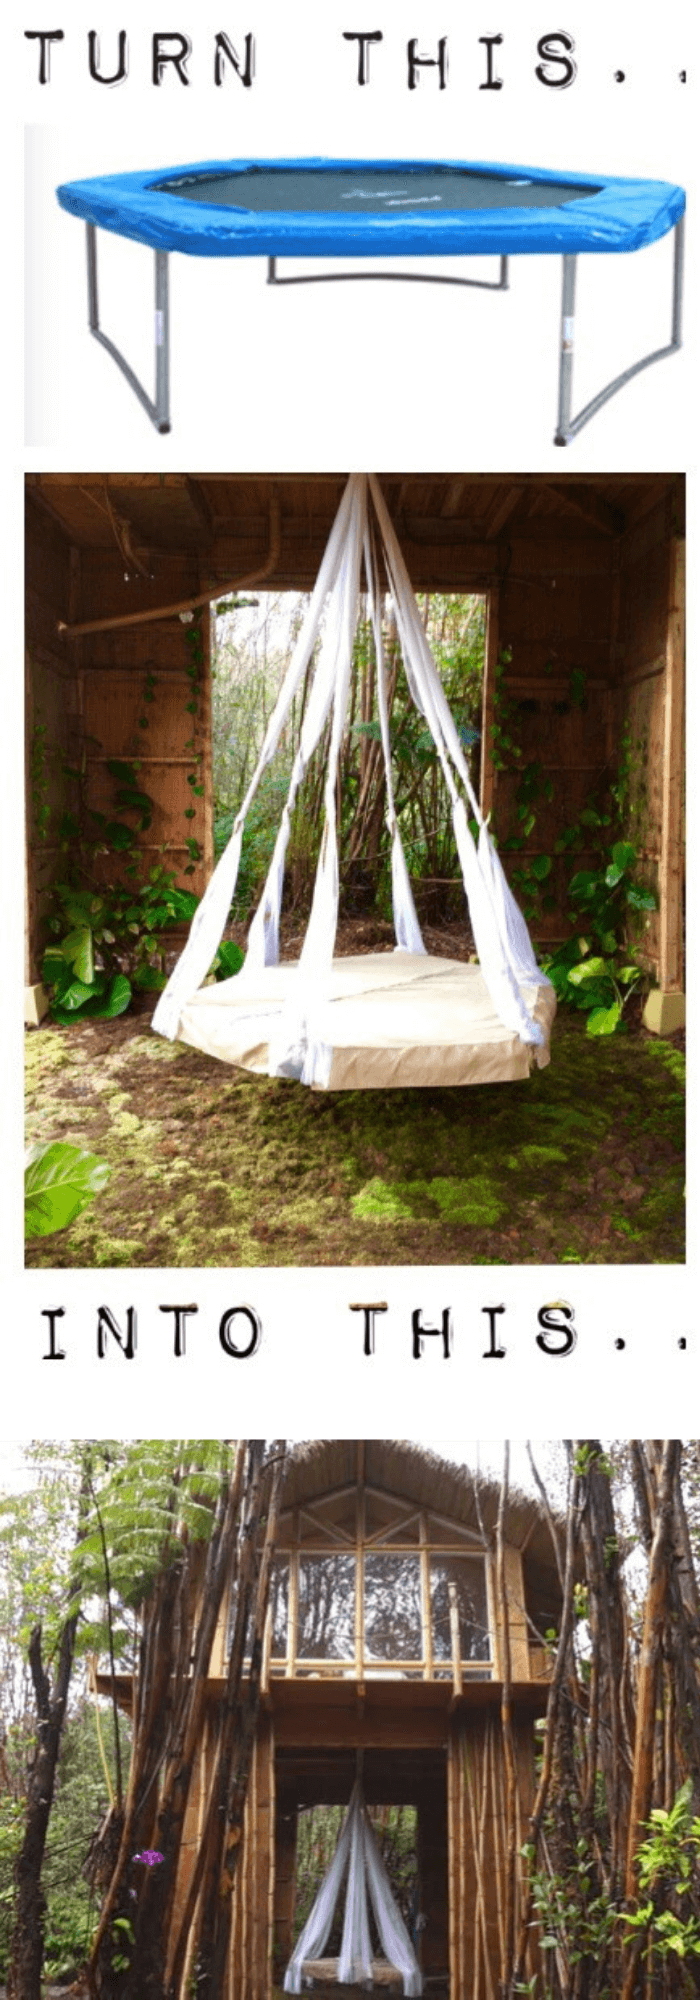 best backyard hammock ideas Make a Hanging Bed out of a Trampoline